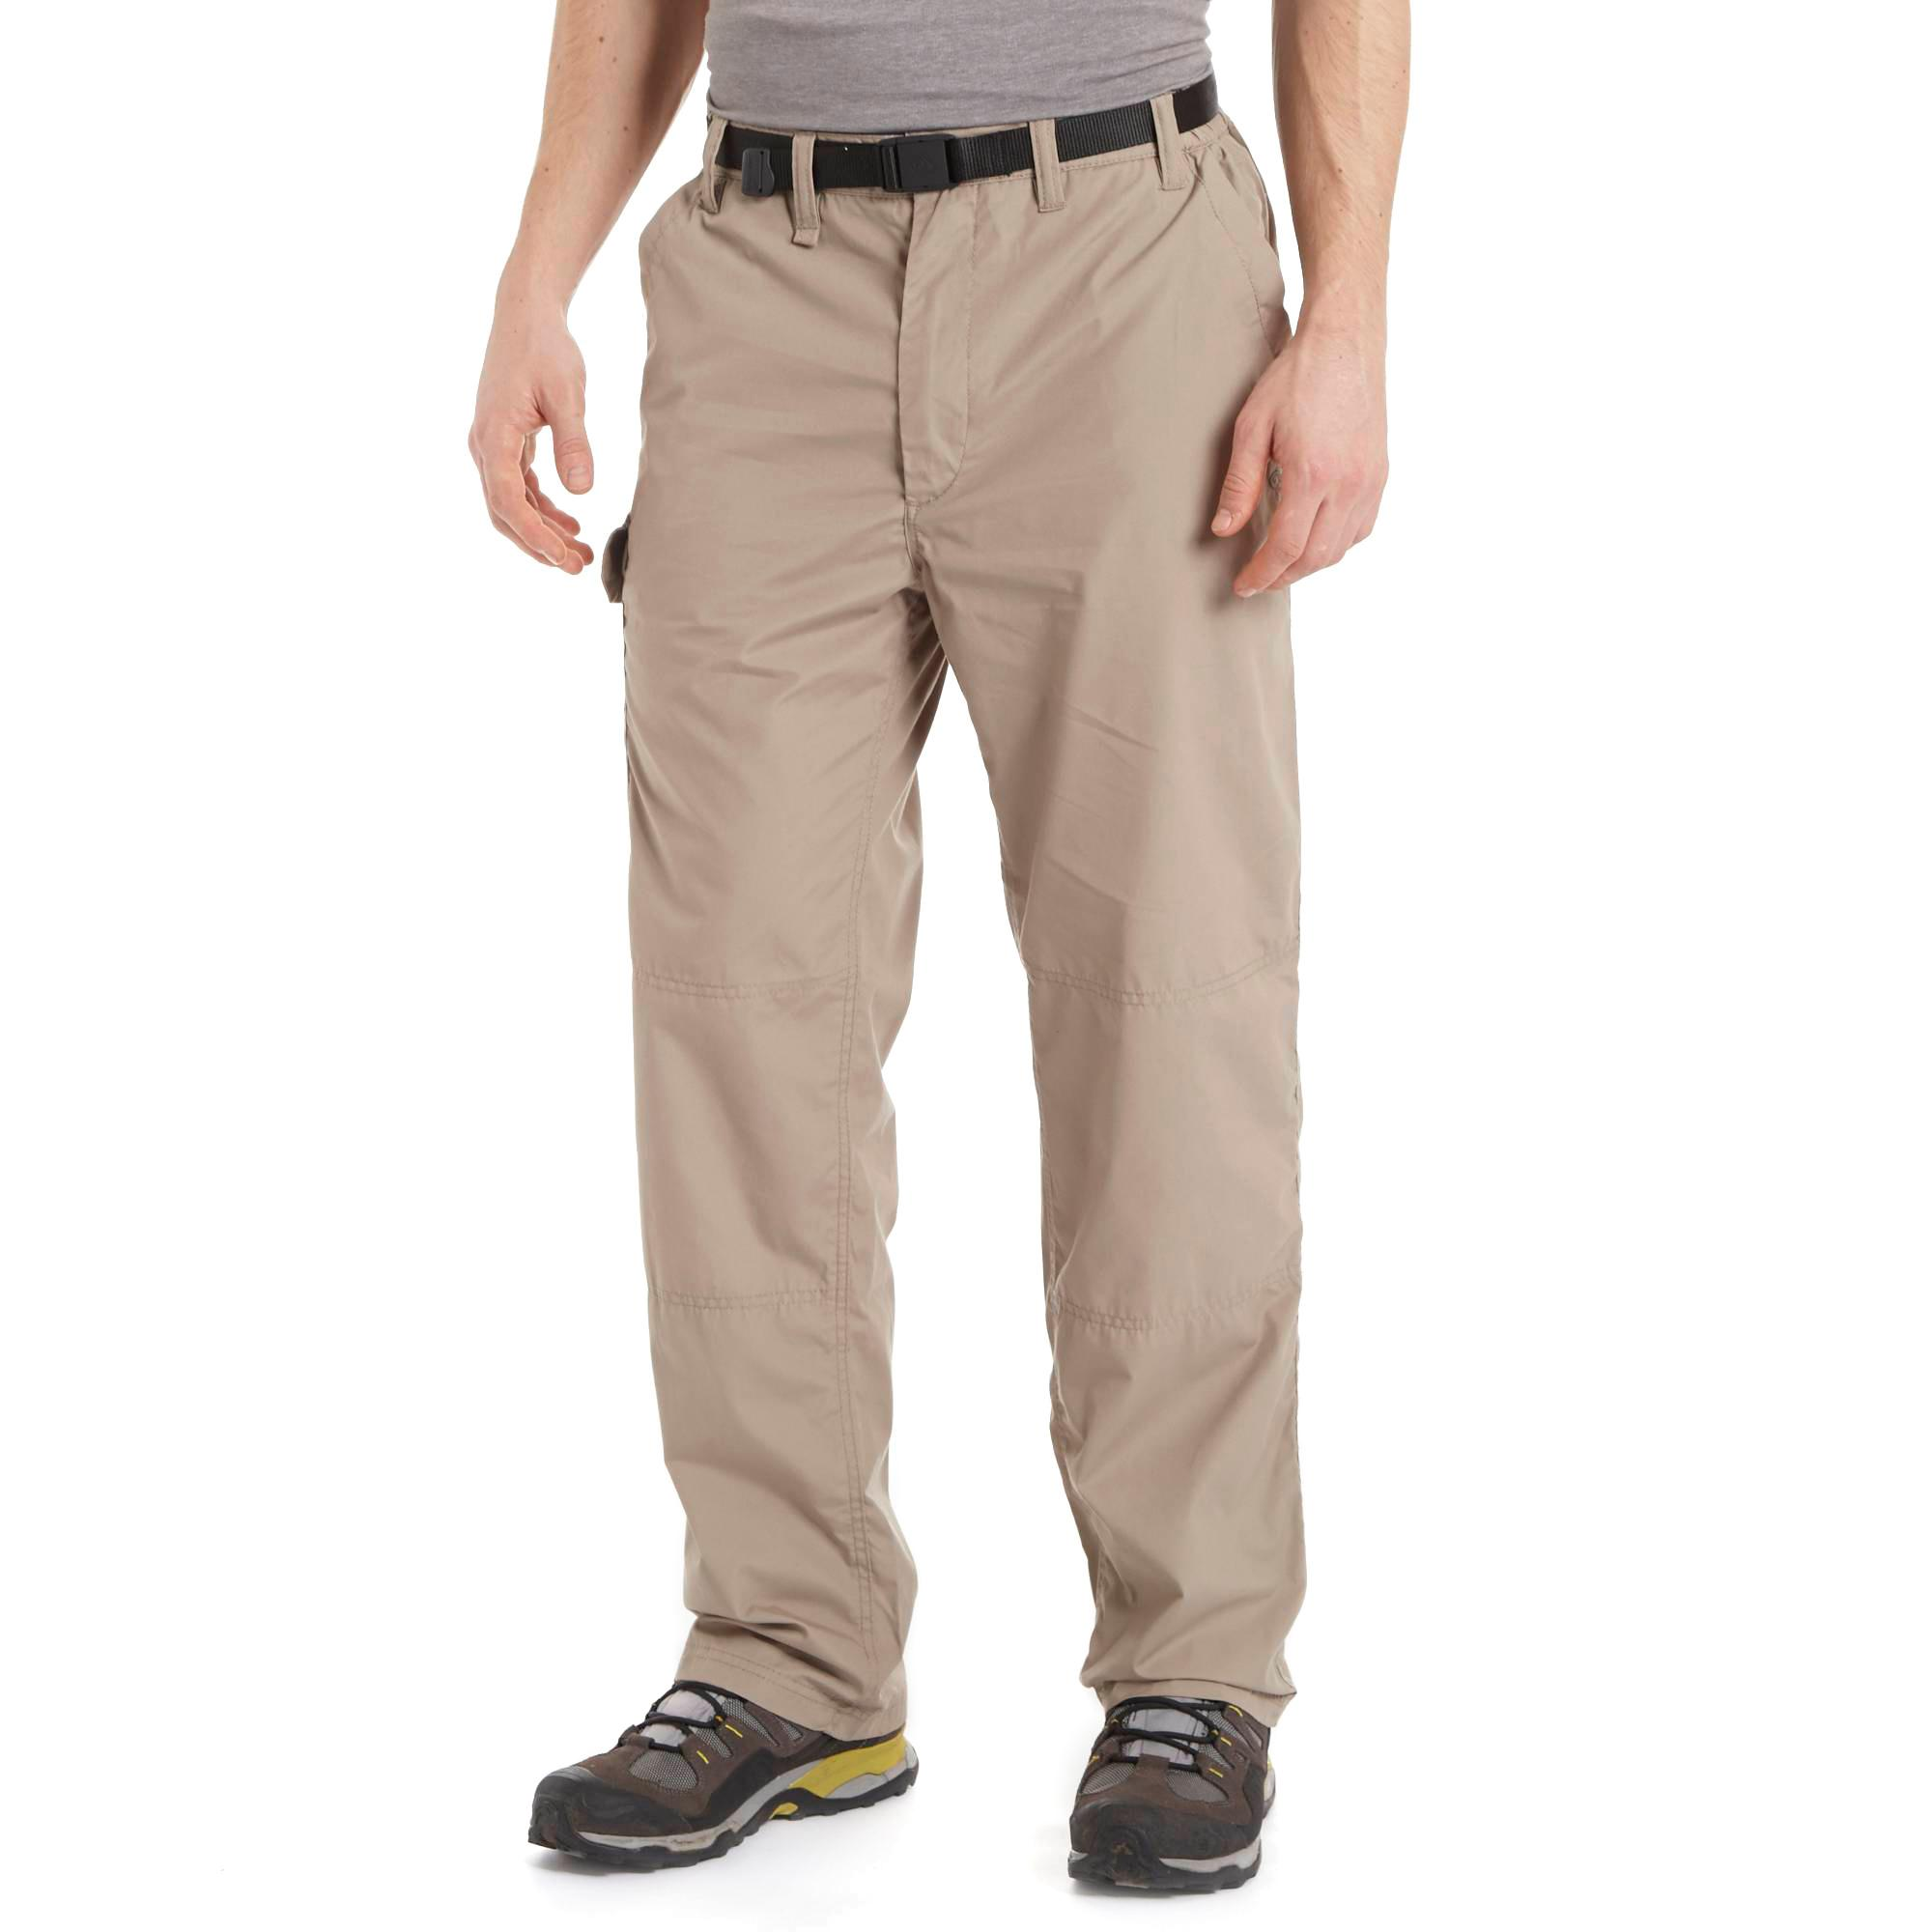 craghoppers classic kiwi trousers review